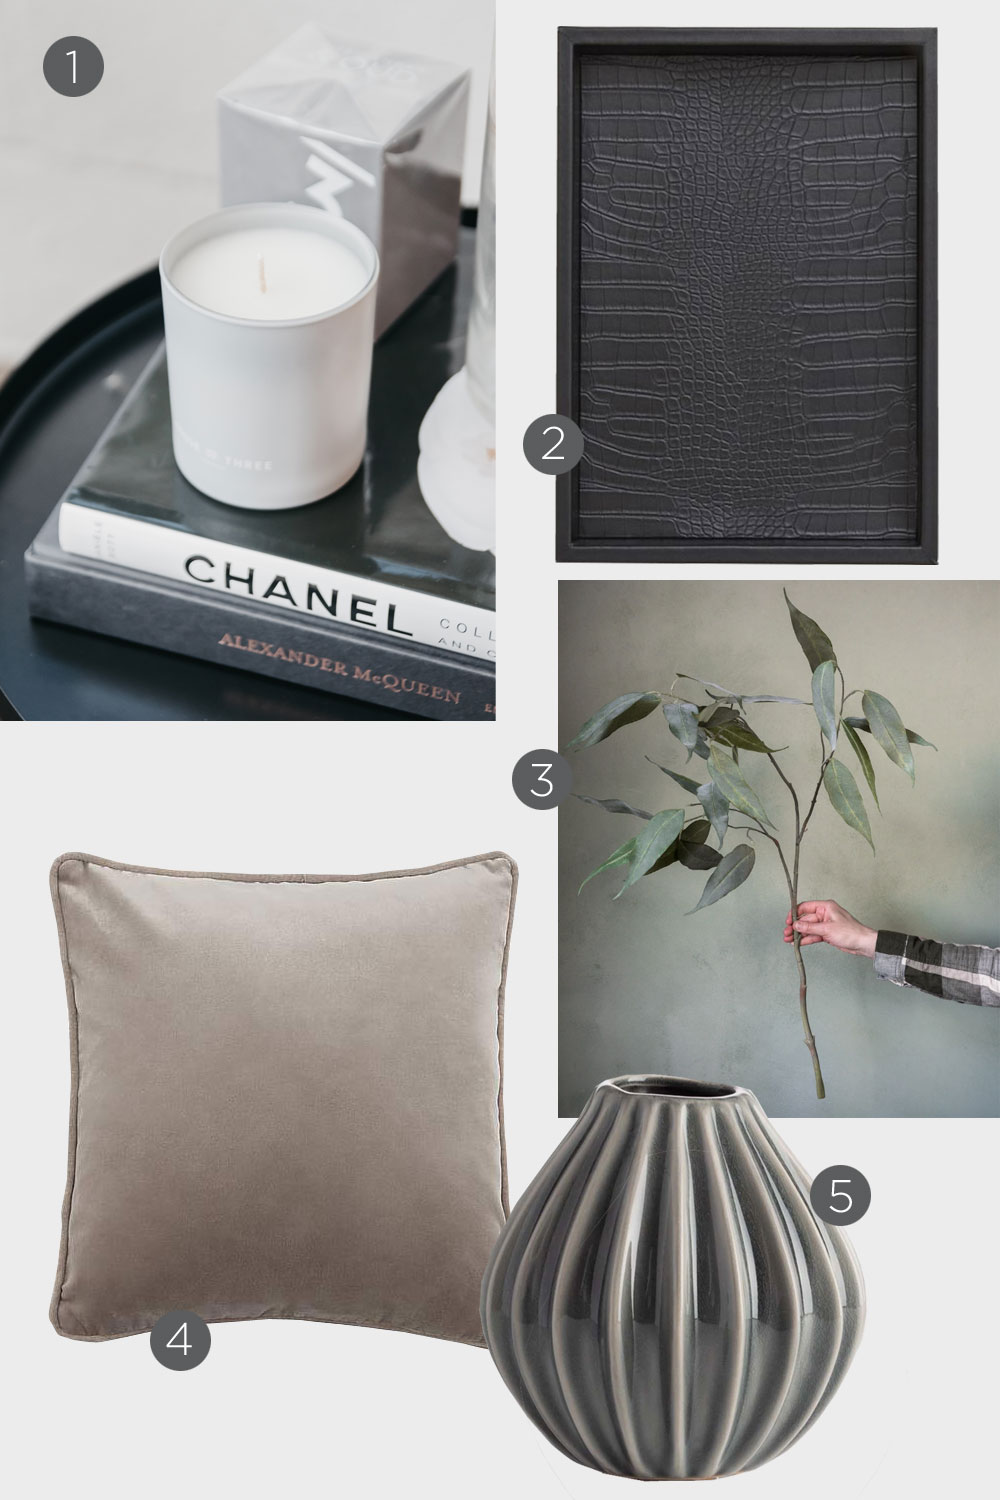 Home Accessories, Luxury Home Accessories, Home Accessories under £30, Cheap Home Accessories, Inexpensive Home Accessories